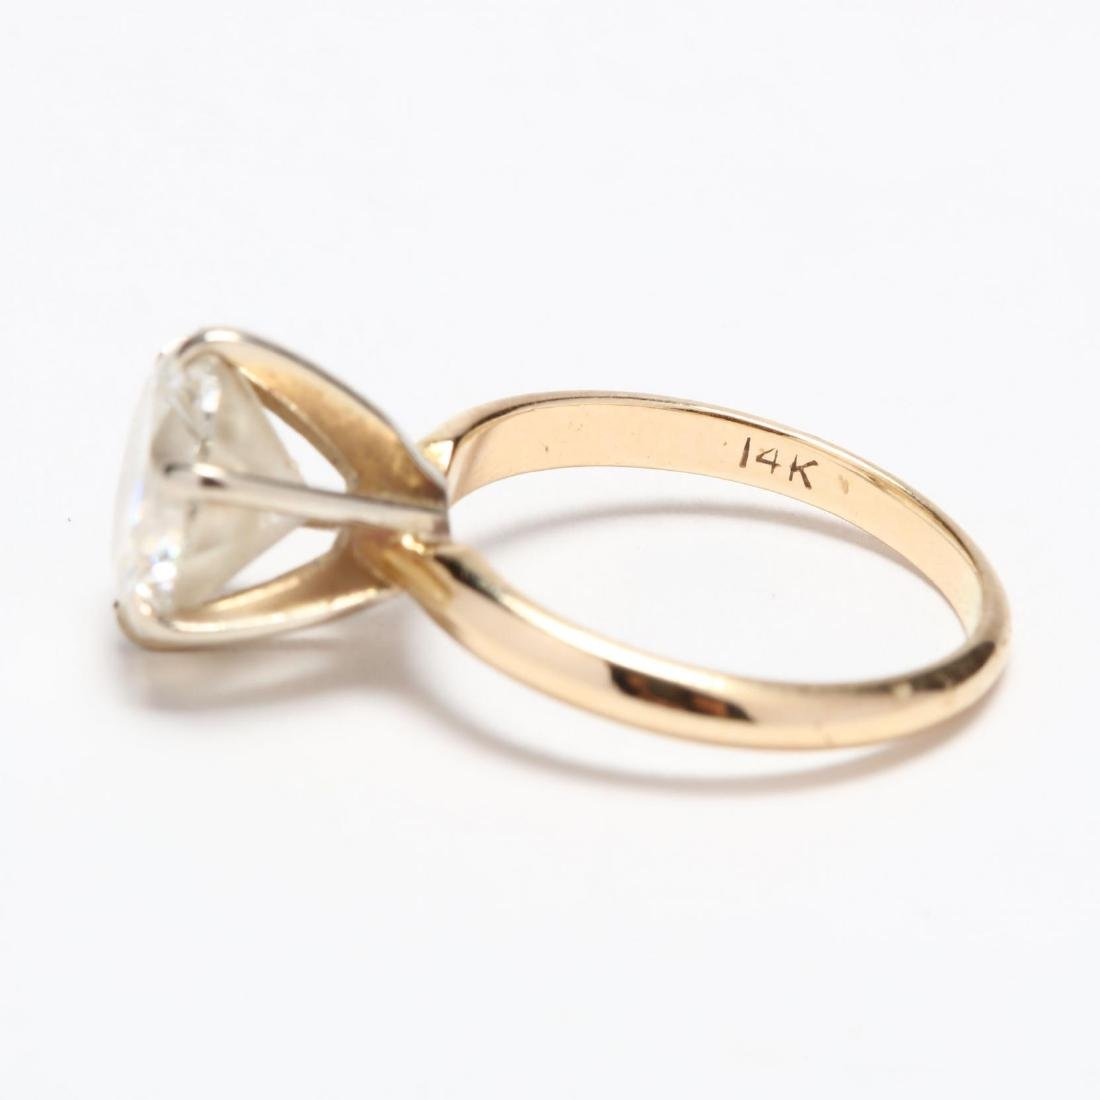 Unmounted Round Brilliant Cut Diamond and 14KT Gold - 8